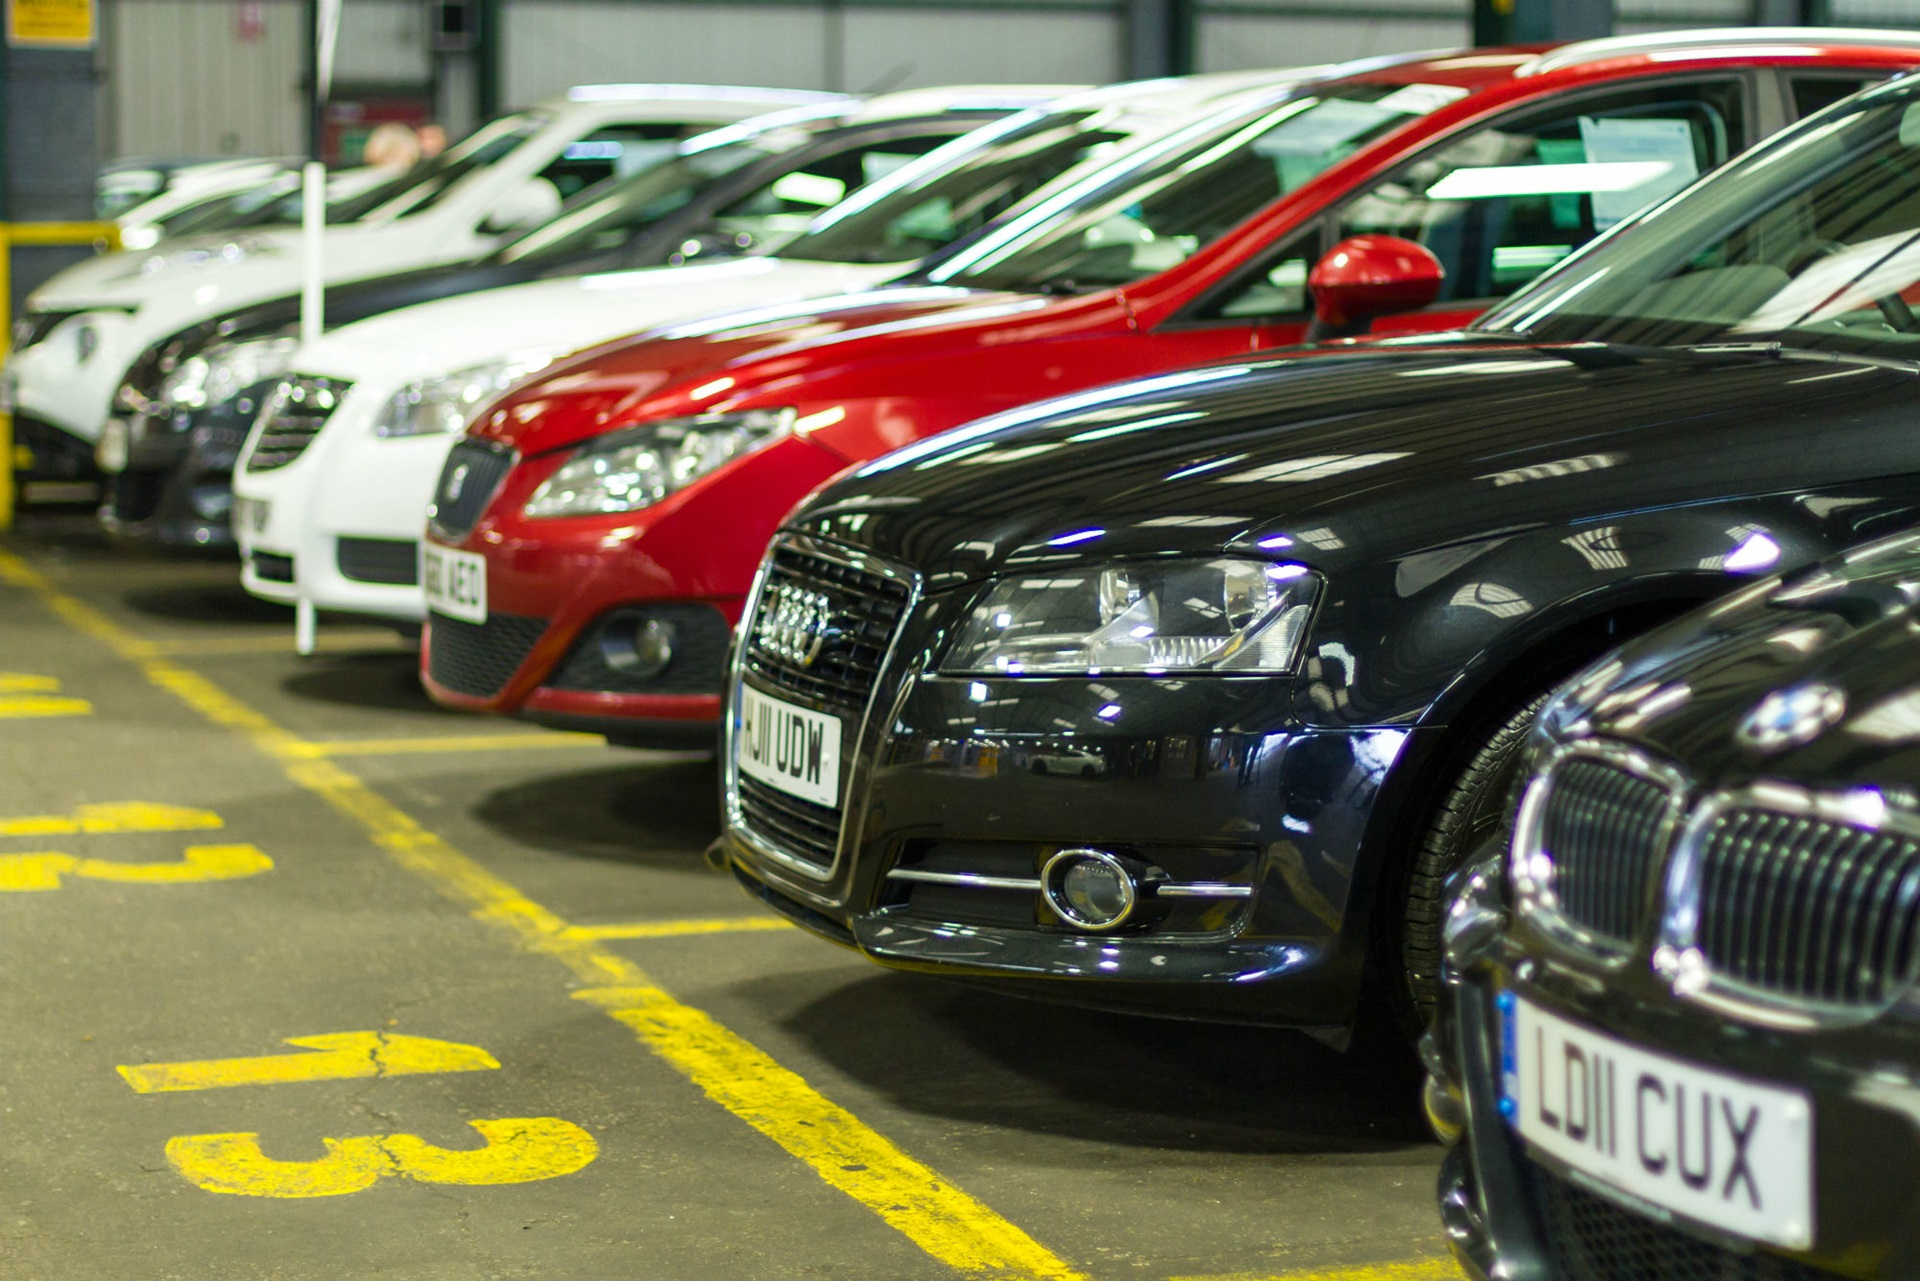 Part exchange cars lined up ready for auction